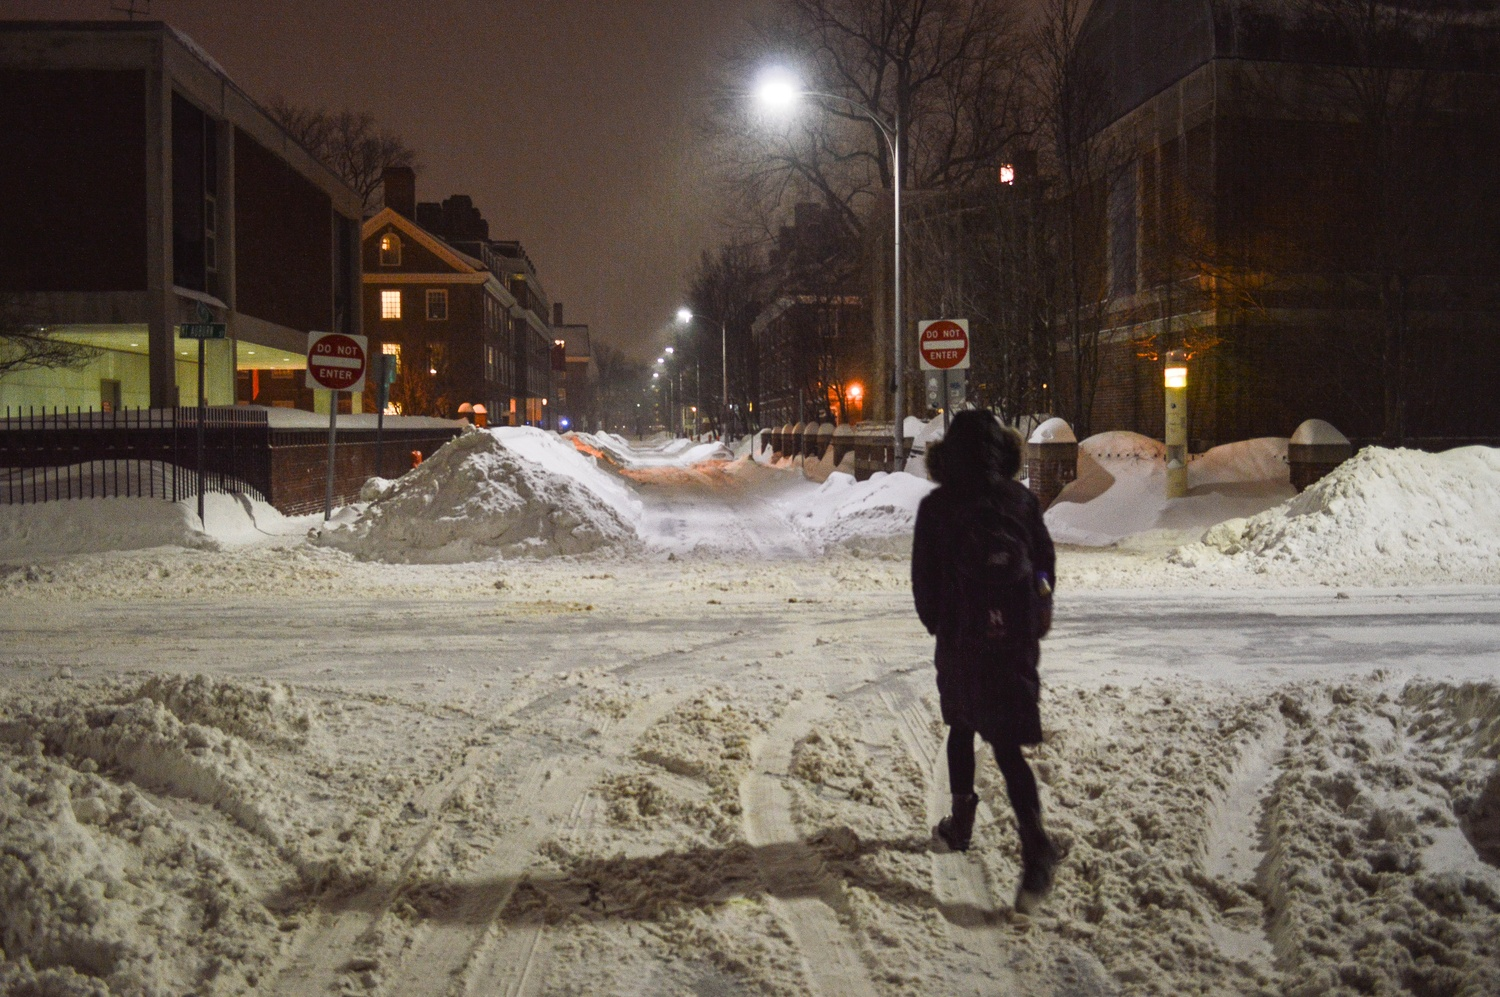 A student walks down Plympton St. last Monday evening, flanked by growing piles of snow. Amid forecasts of more wintry weather, administrators made the decision to suspend most operations at the University on Feb. 10.